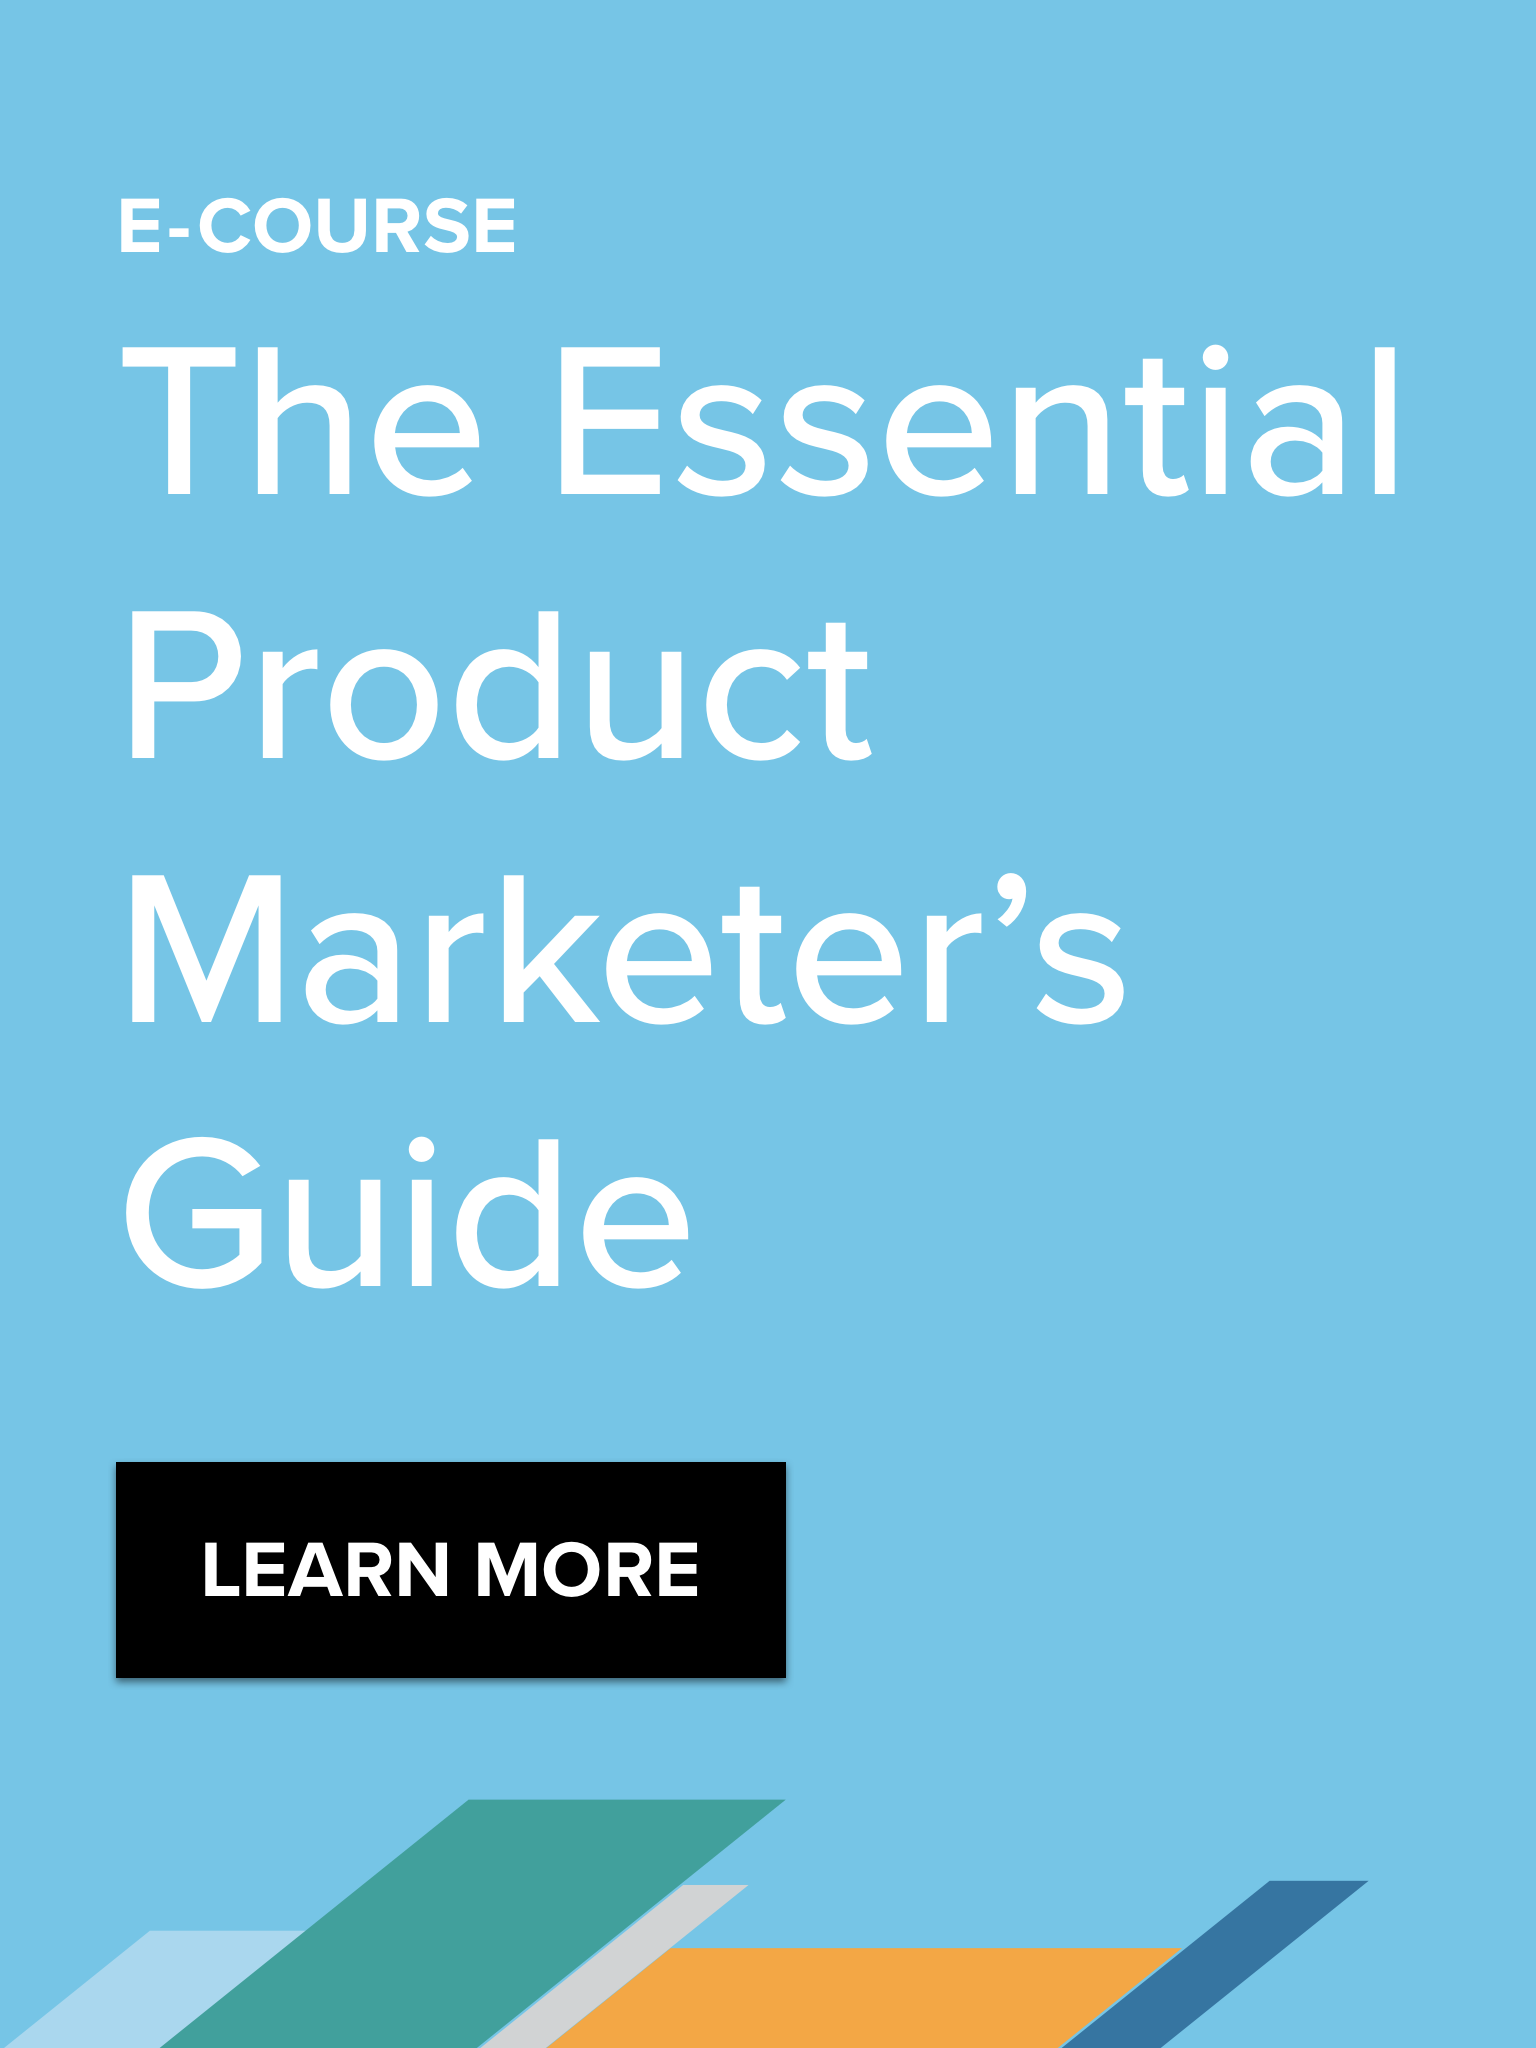 E-Course: The Essential Product Marketer's Guide